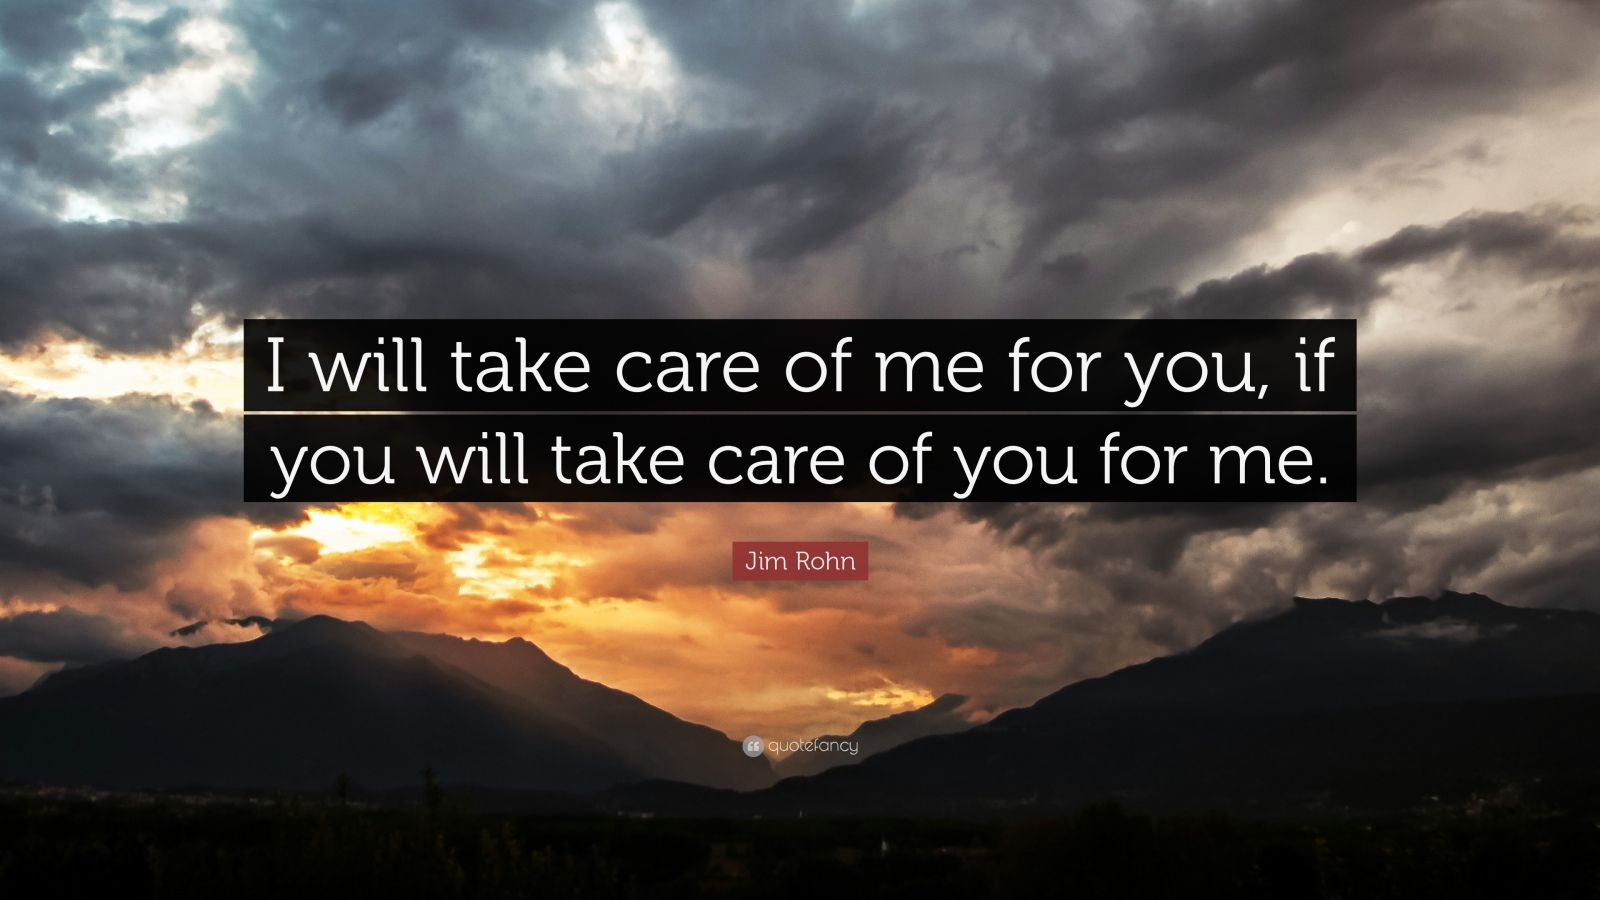 """Jim Rohn Quote: """"I will take care of me for you. if you will take care of you for me. """" (19 wallpapers) - Quotefancy"""